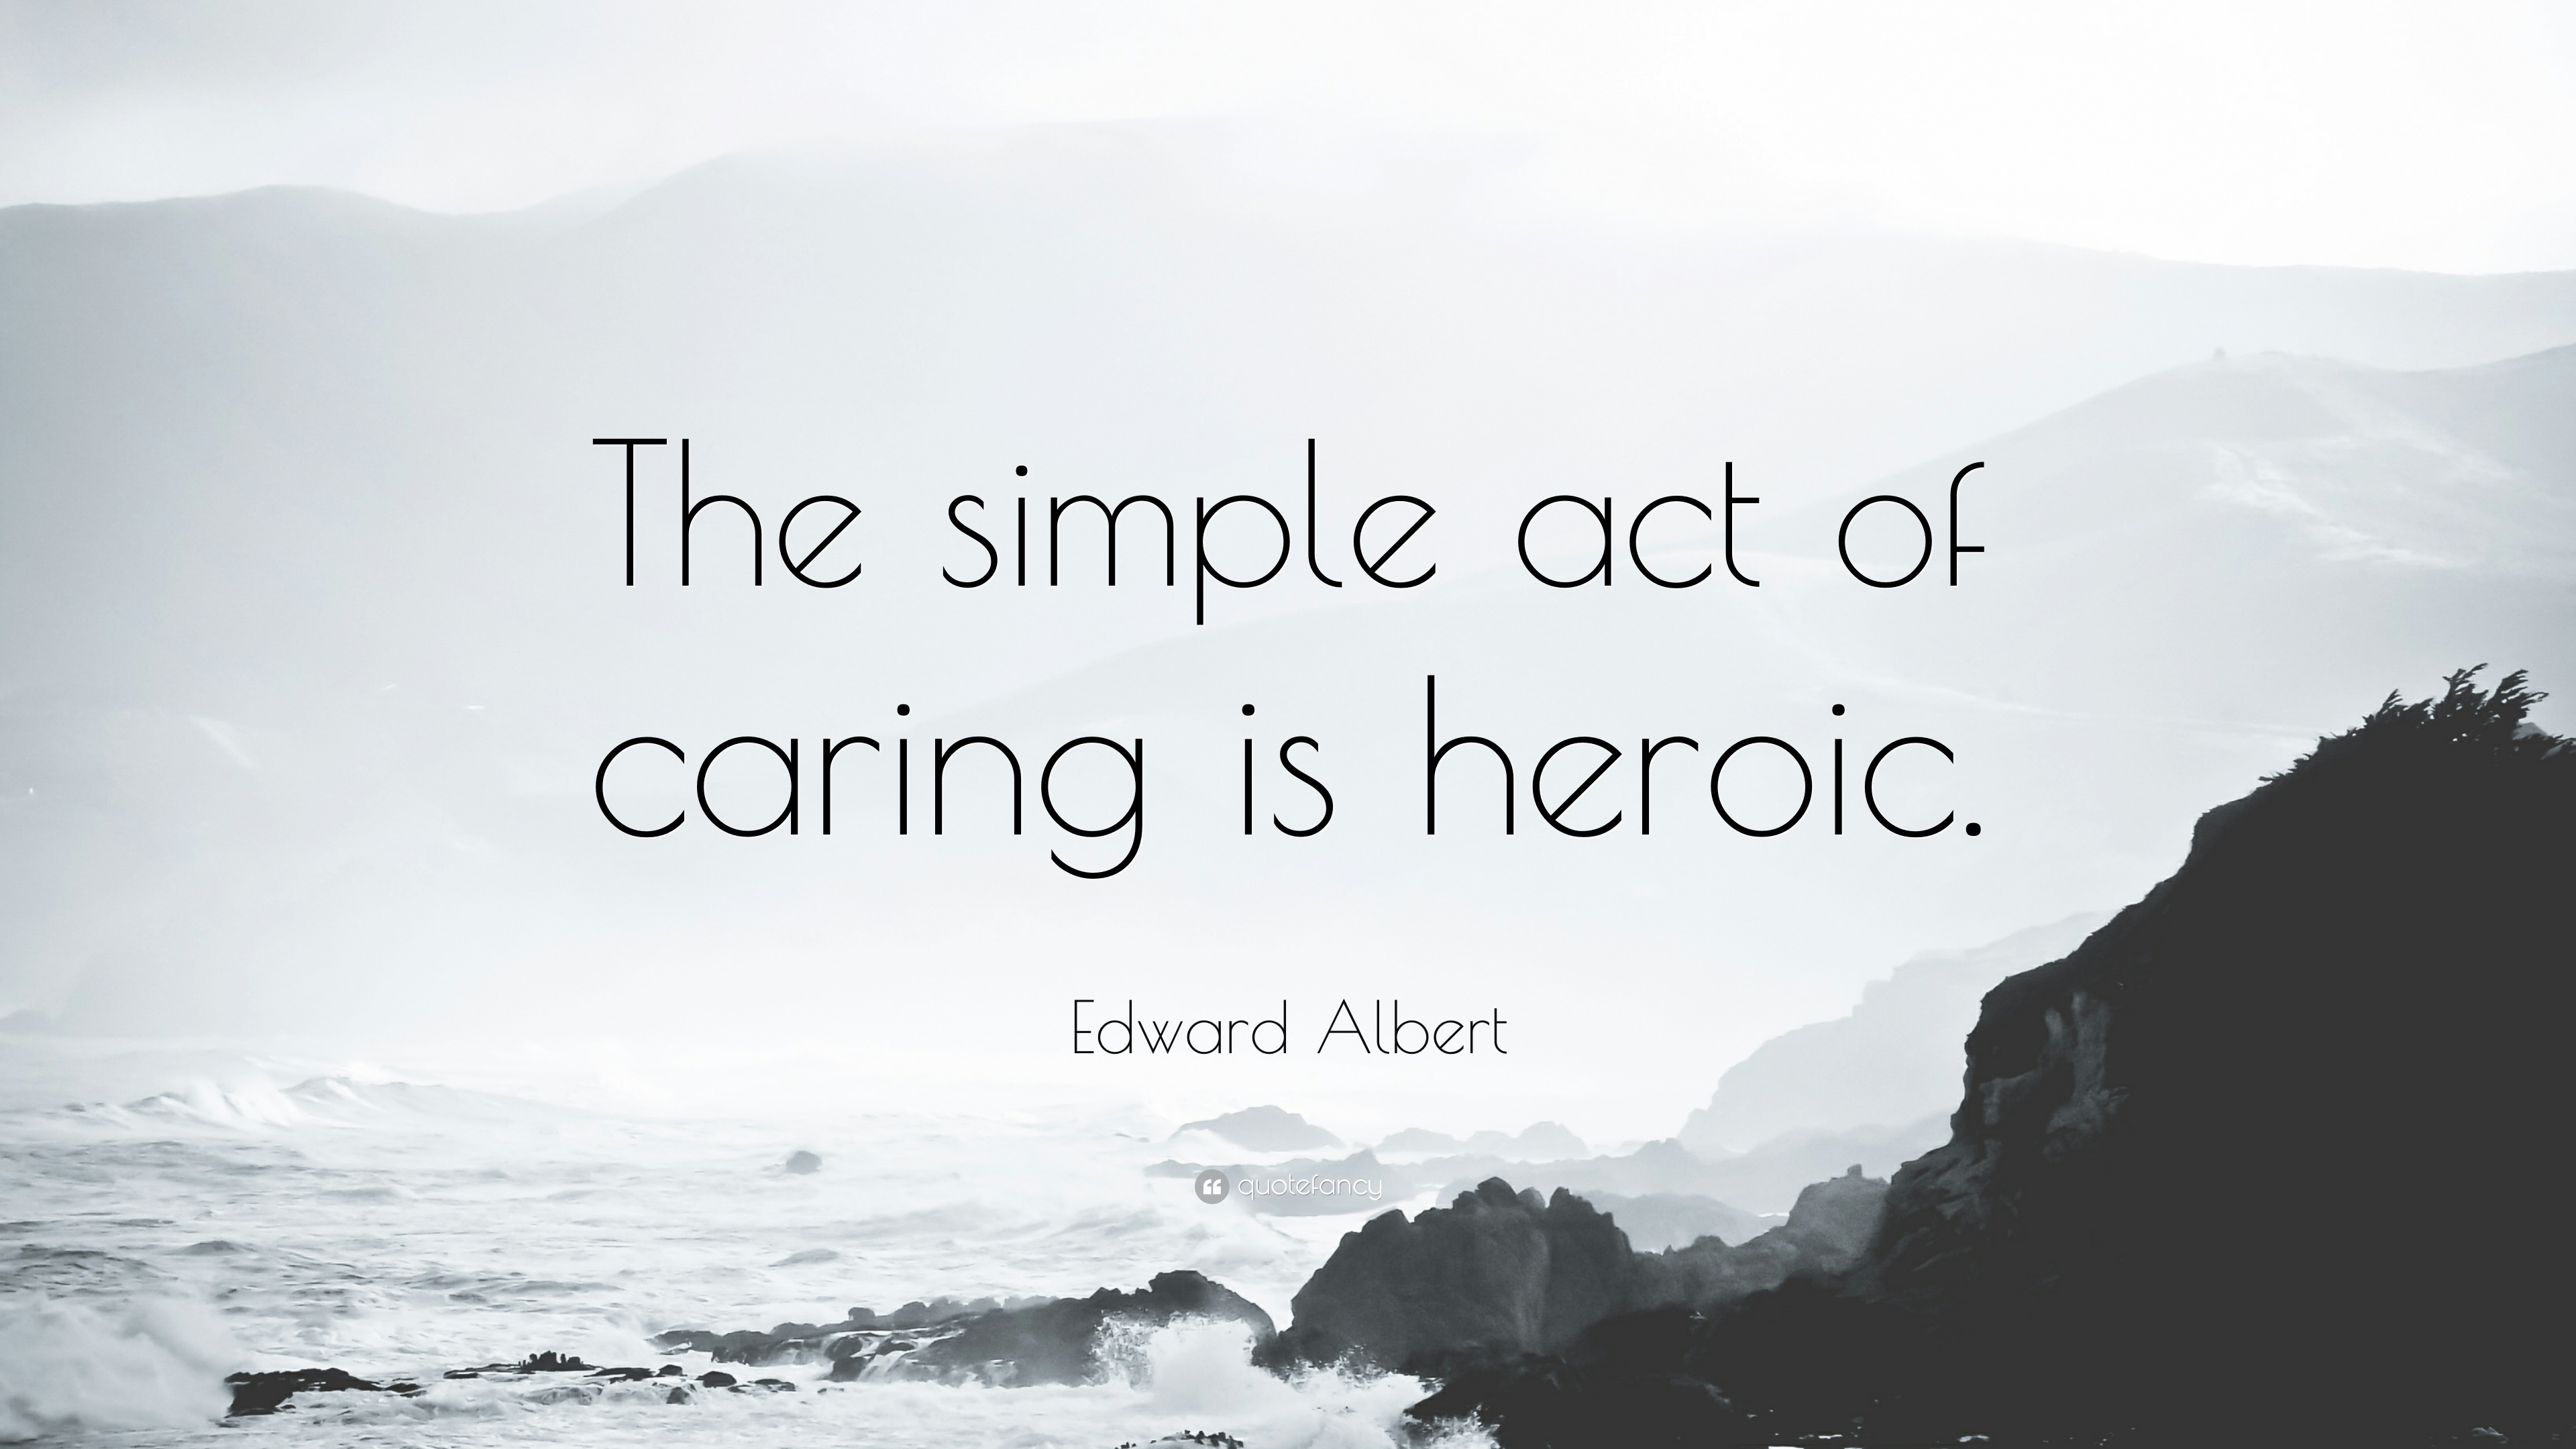 Quotes About Caring Fascinating Caring Quotes 40 Wallpapers  Quotefancy